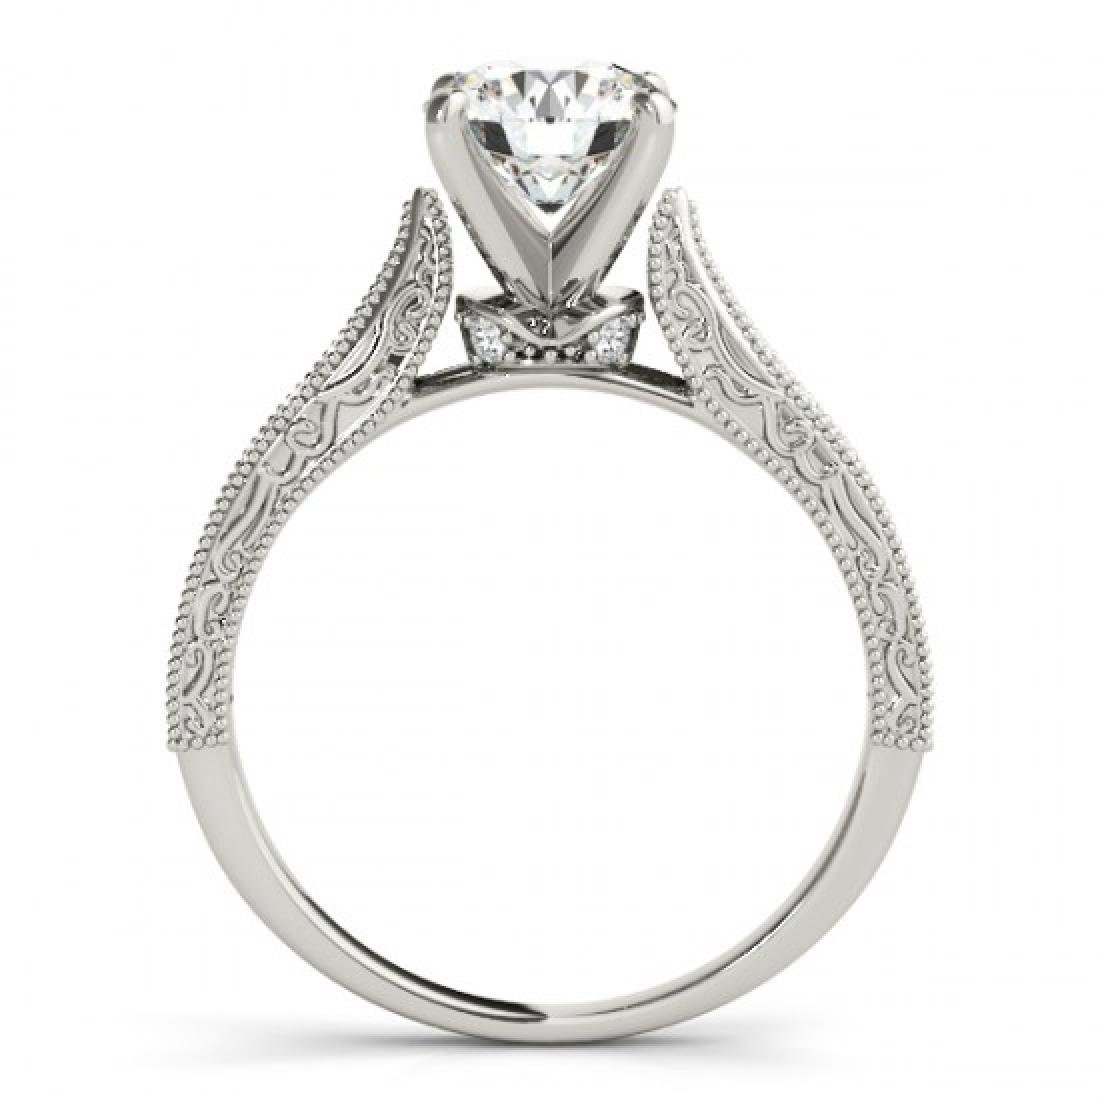 1.21 CTW Certified VS/SI Diamond Solitaire Antique Ring - 2